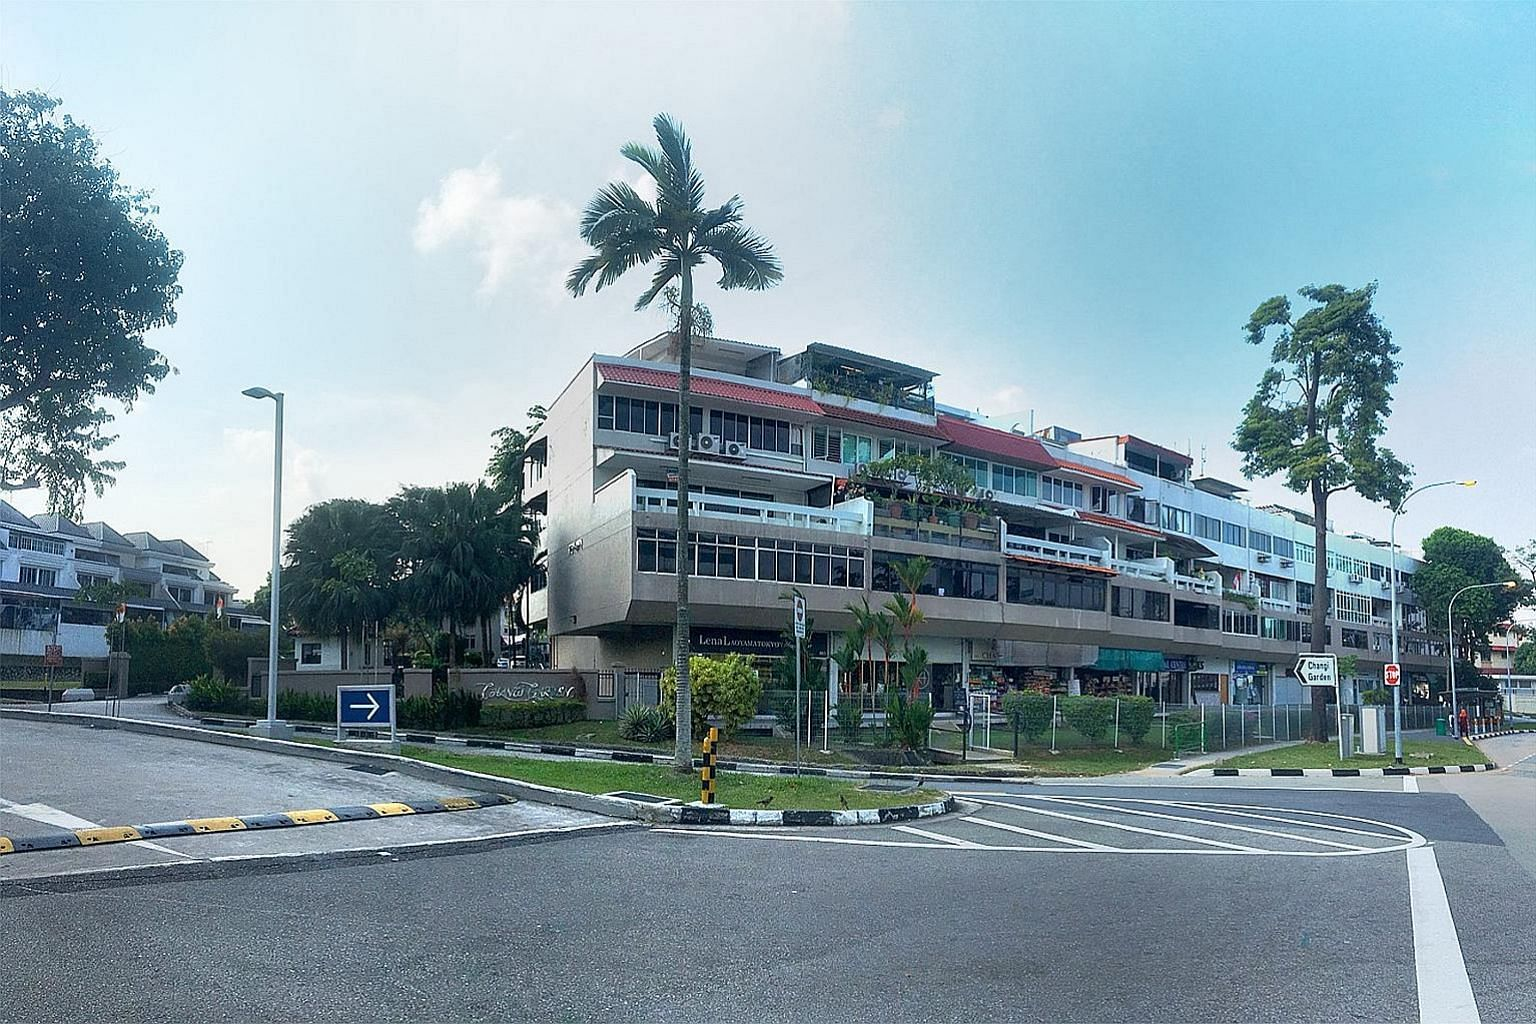 The freehold property at the junction of Upper Changi Road North and Jalan Mariam had one big plus when it hit the market - there had not been any residential land sold within a 2.8 km radius since 2013.